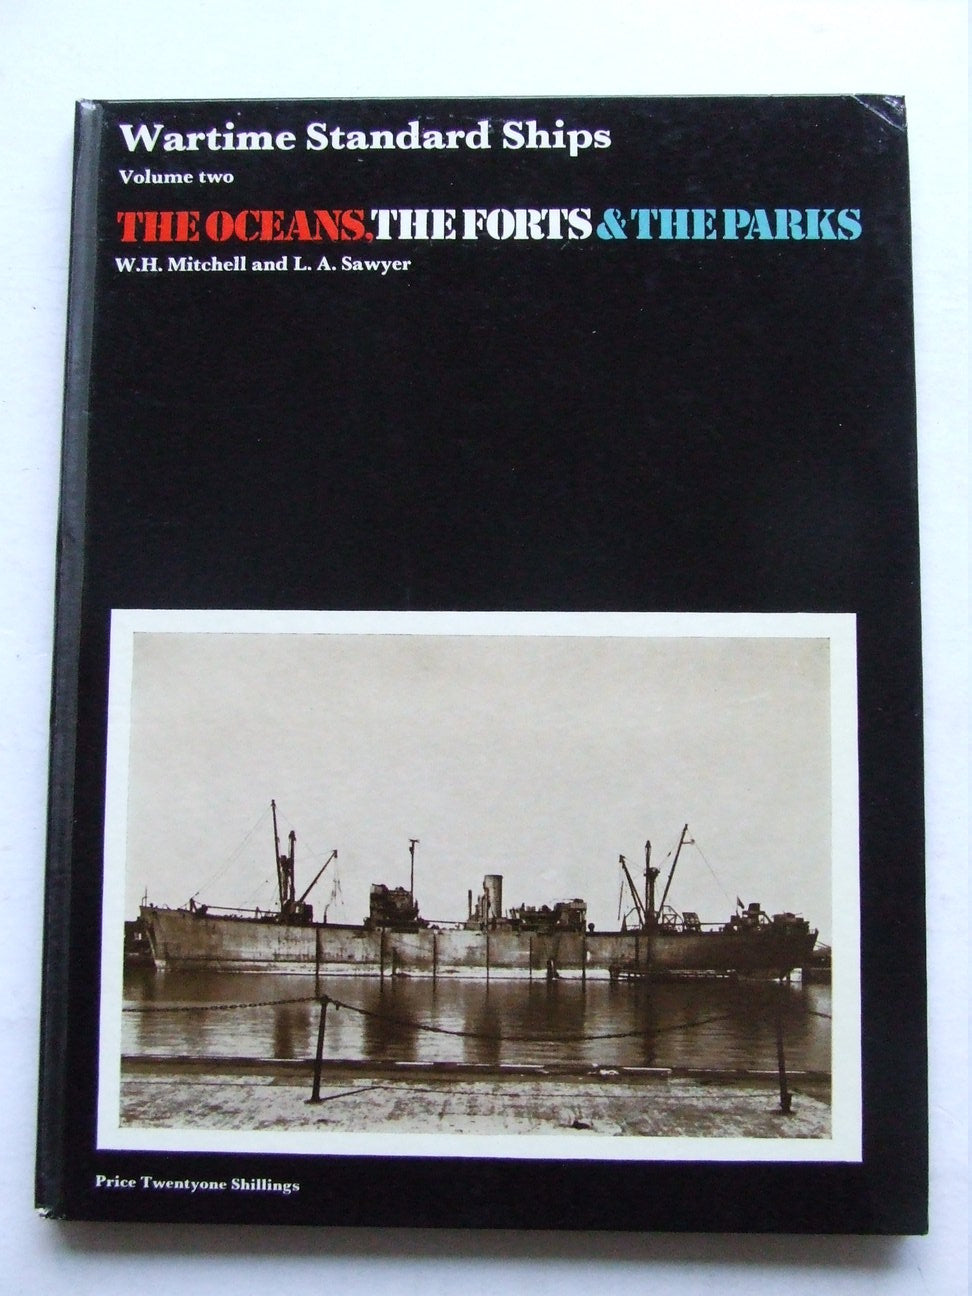 The Oceans, The Forts and The Parks